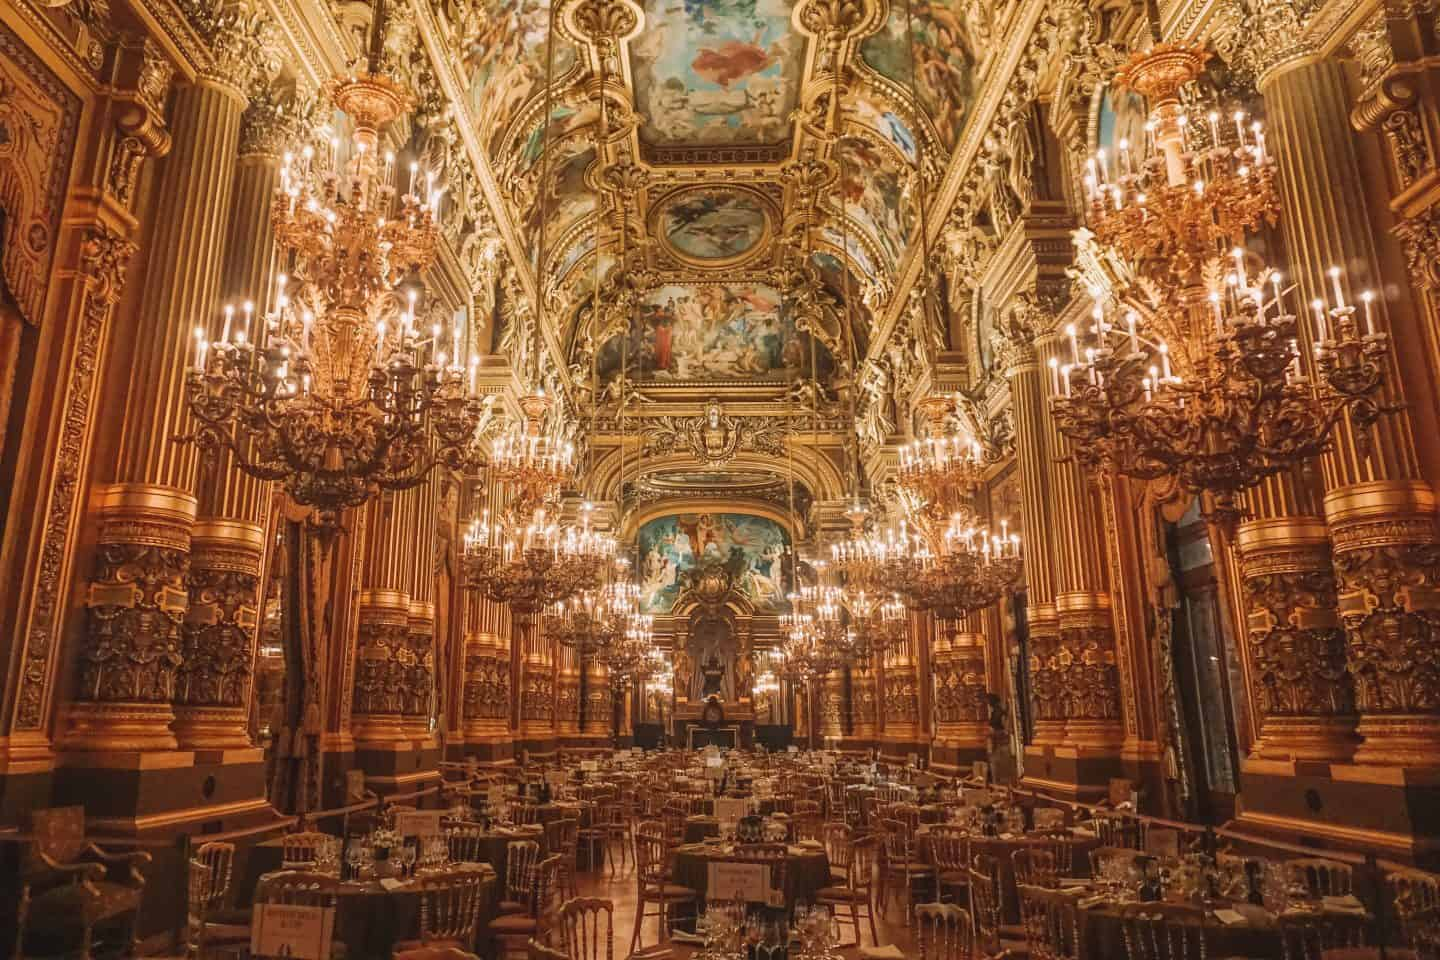 Event room at Paris Opera featuring beautiful chandeliers with candles